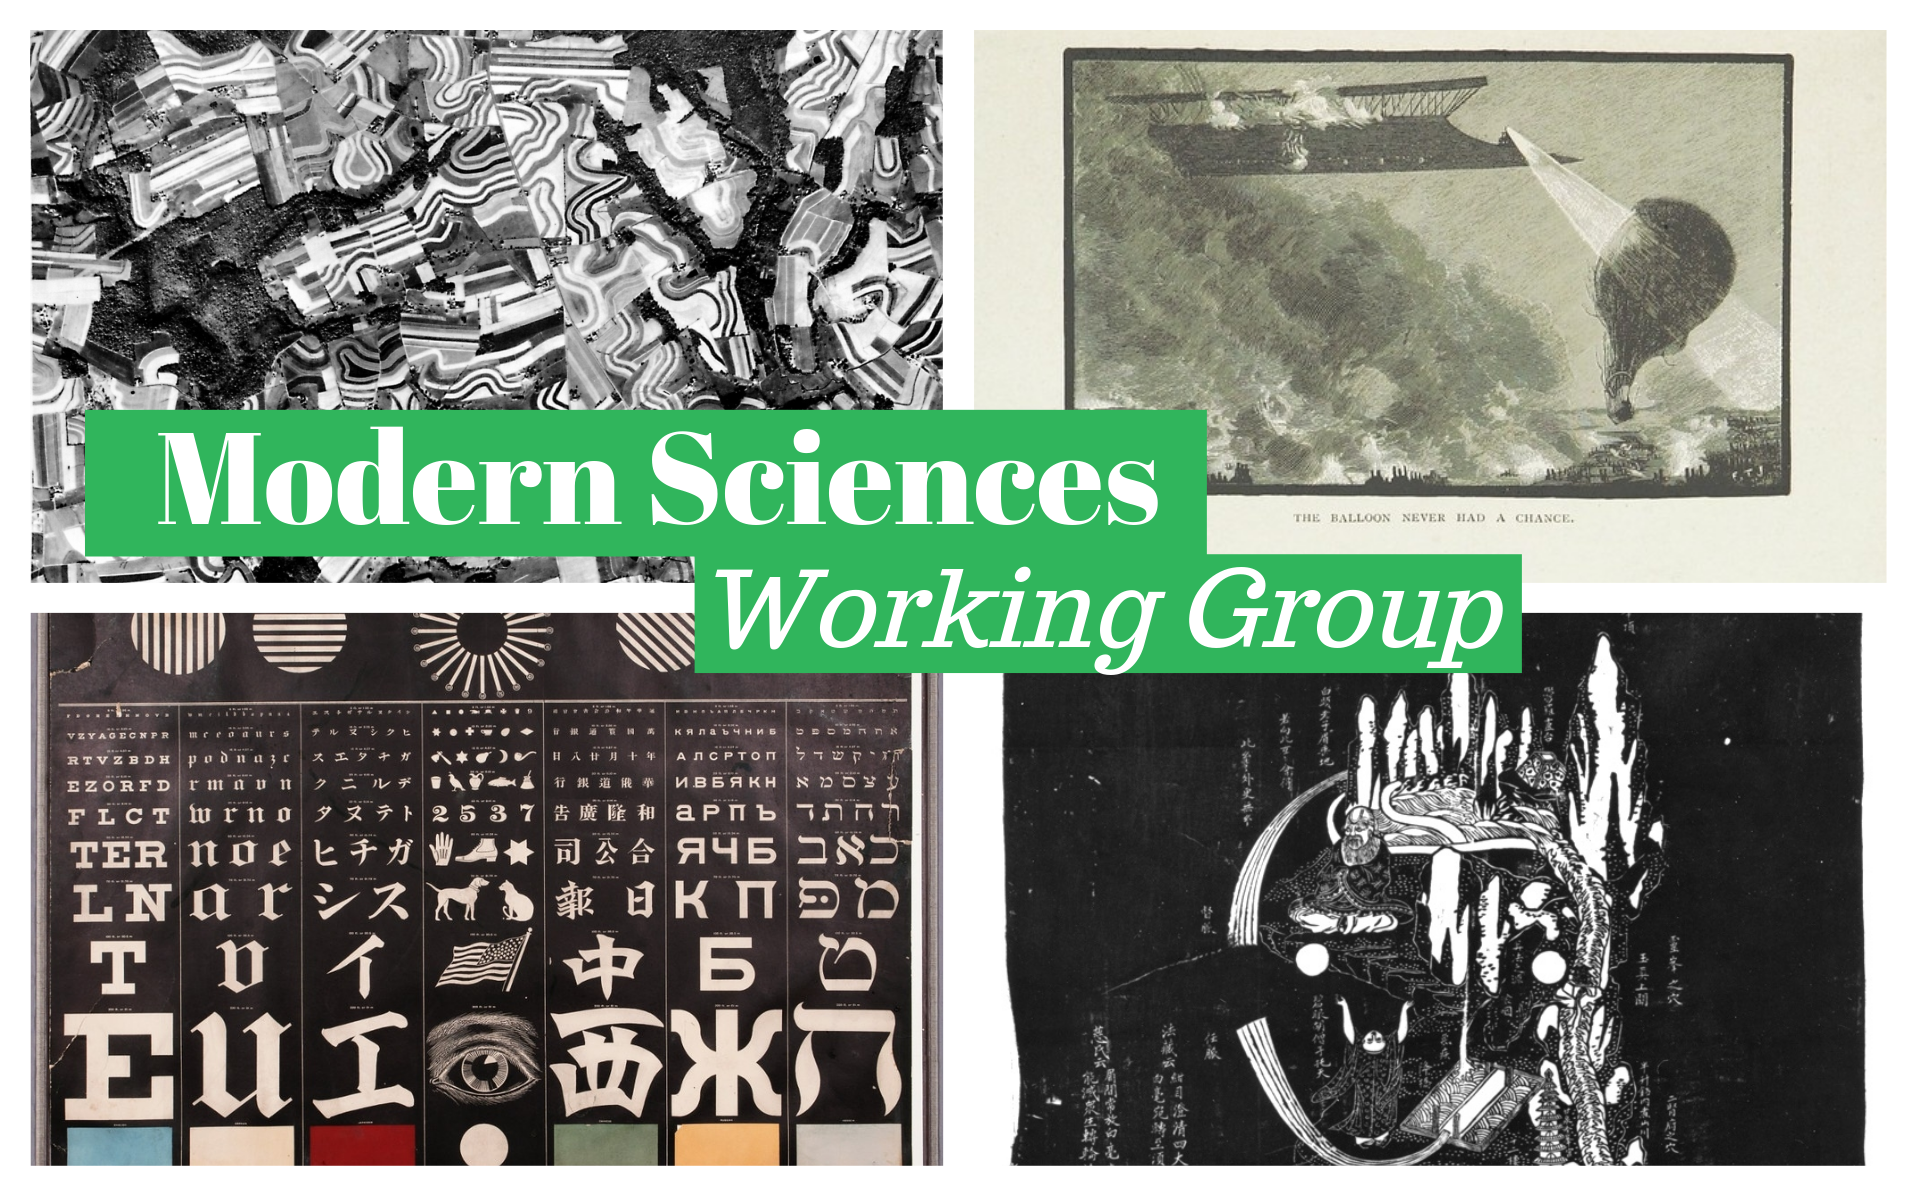 [Modern Sciences Working Group]